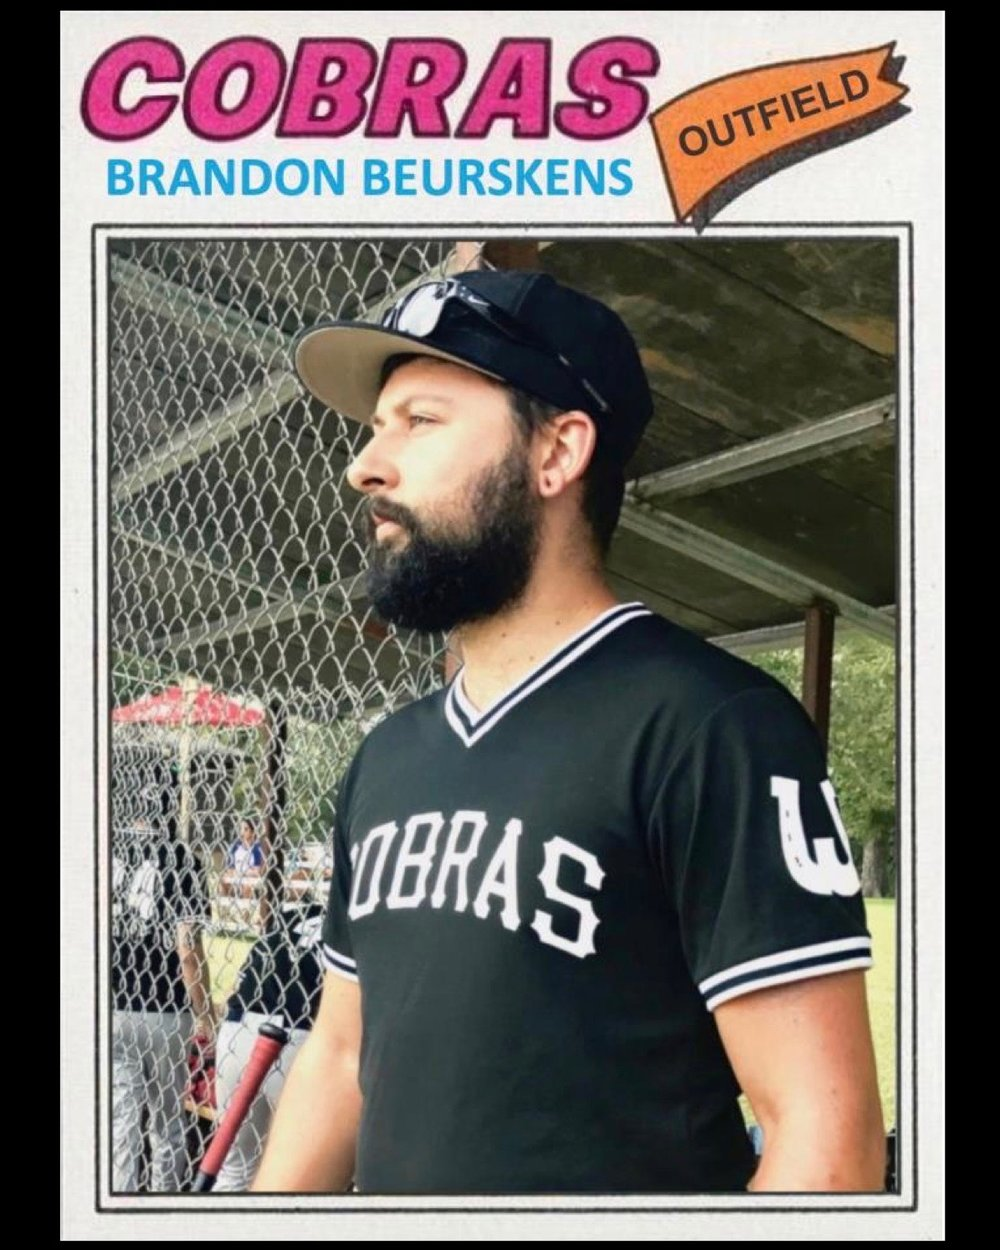 #15 - Brandon Beurskens